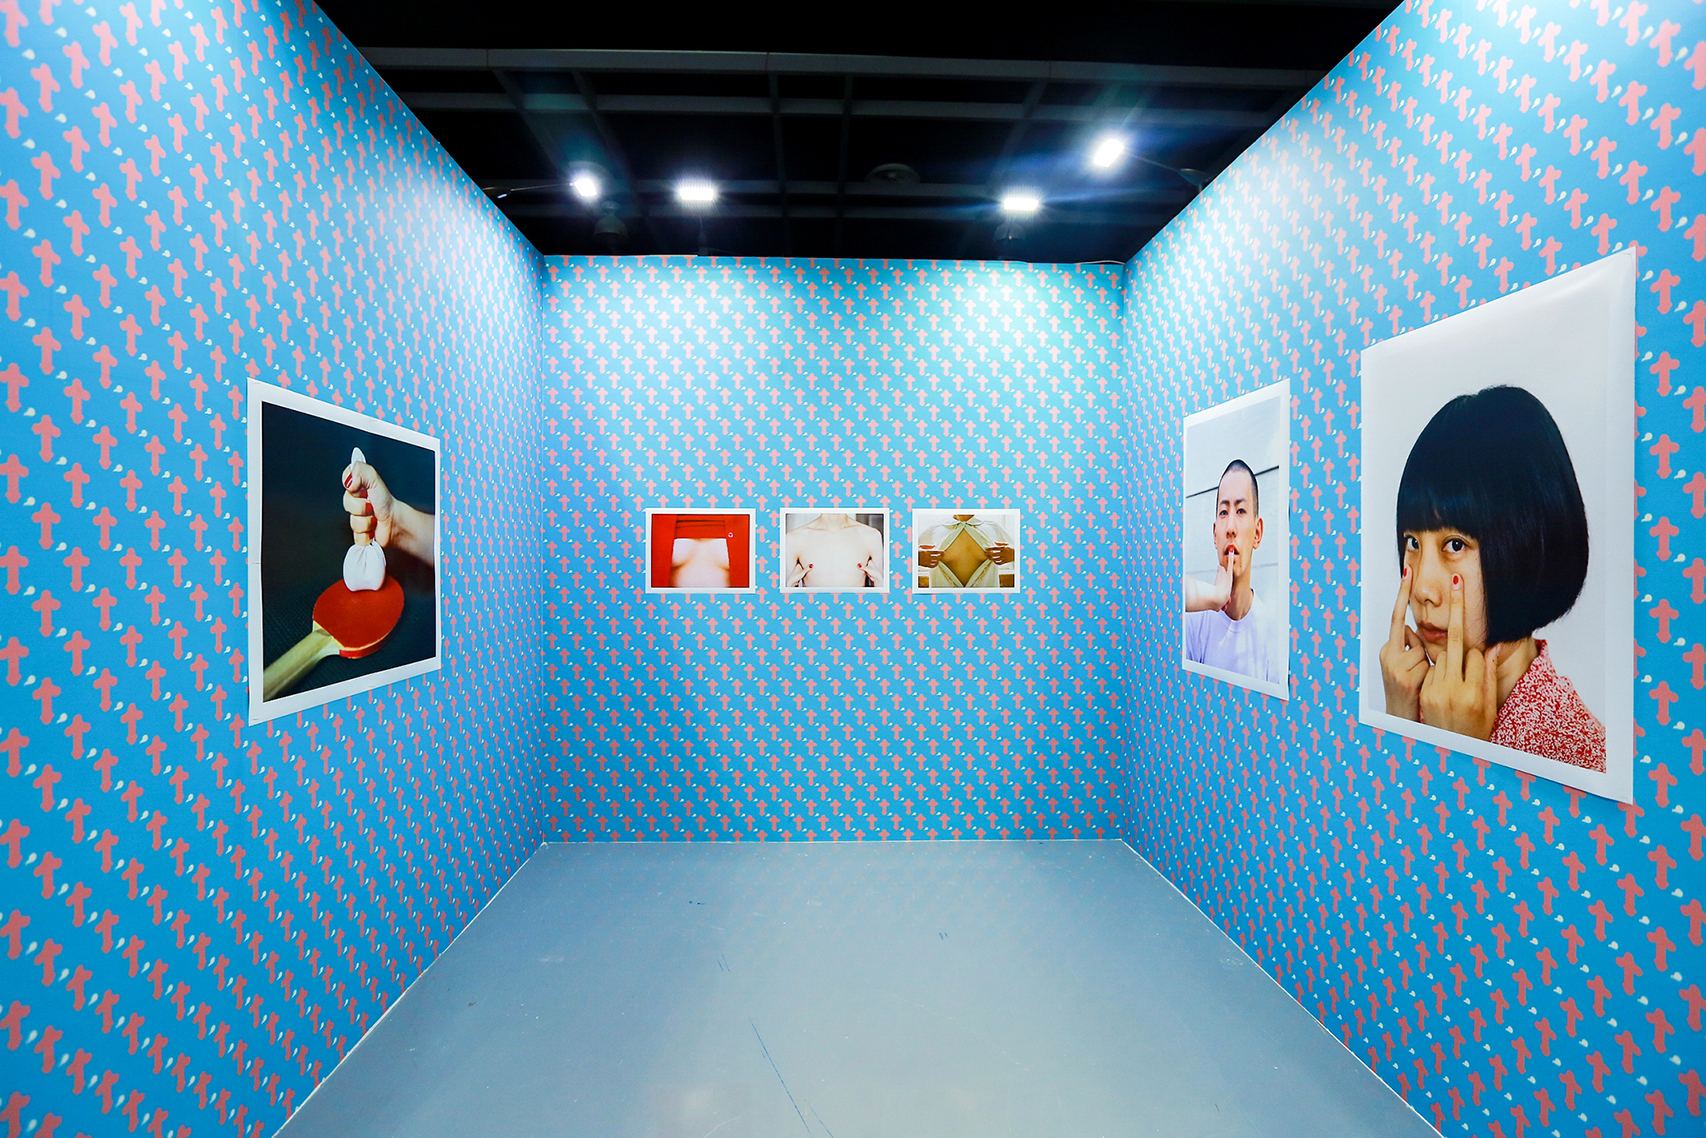 Pixy Liao's exhibition at Jimei x Arles international photo festival